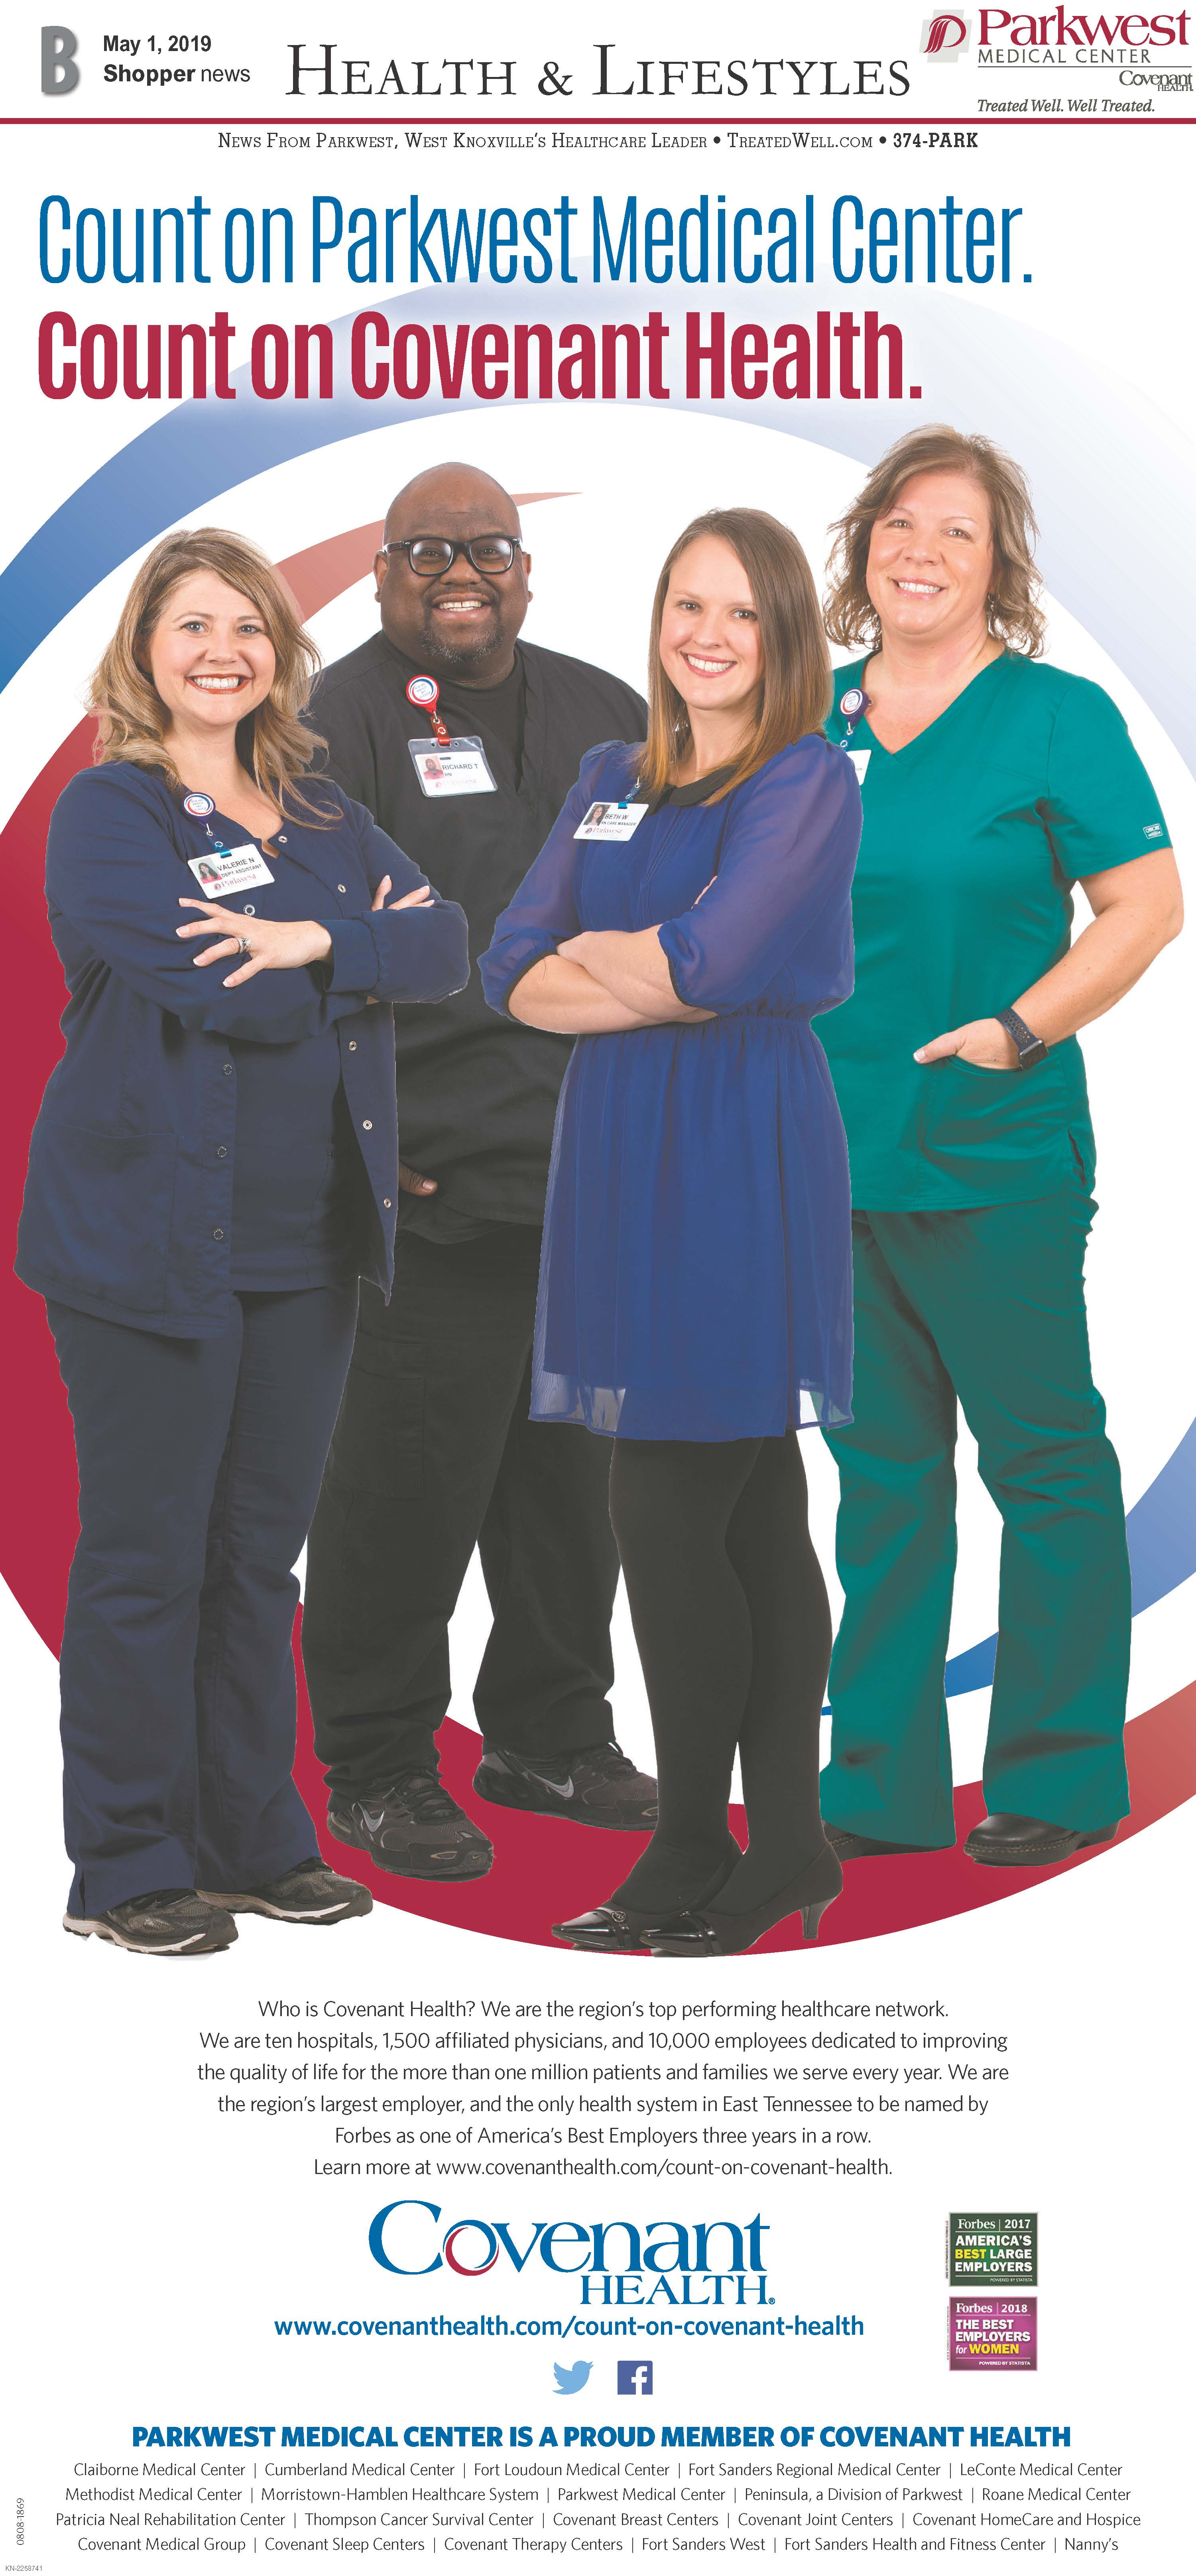 Health and Lifestyles page featuring 4 employees.